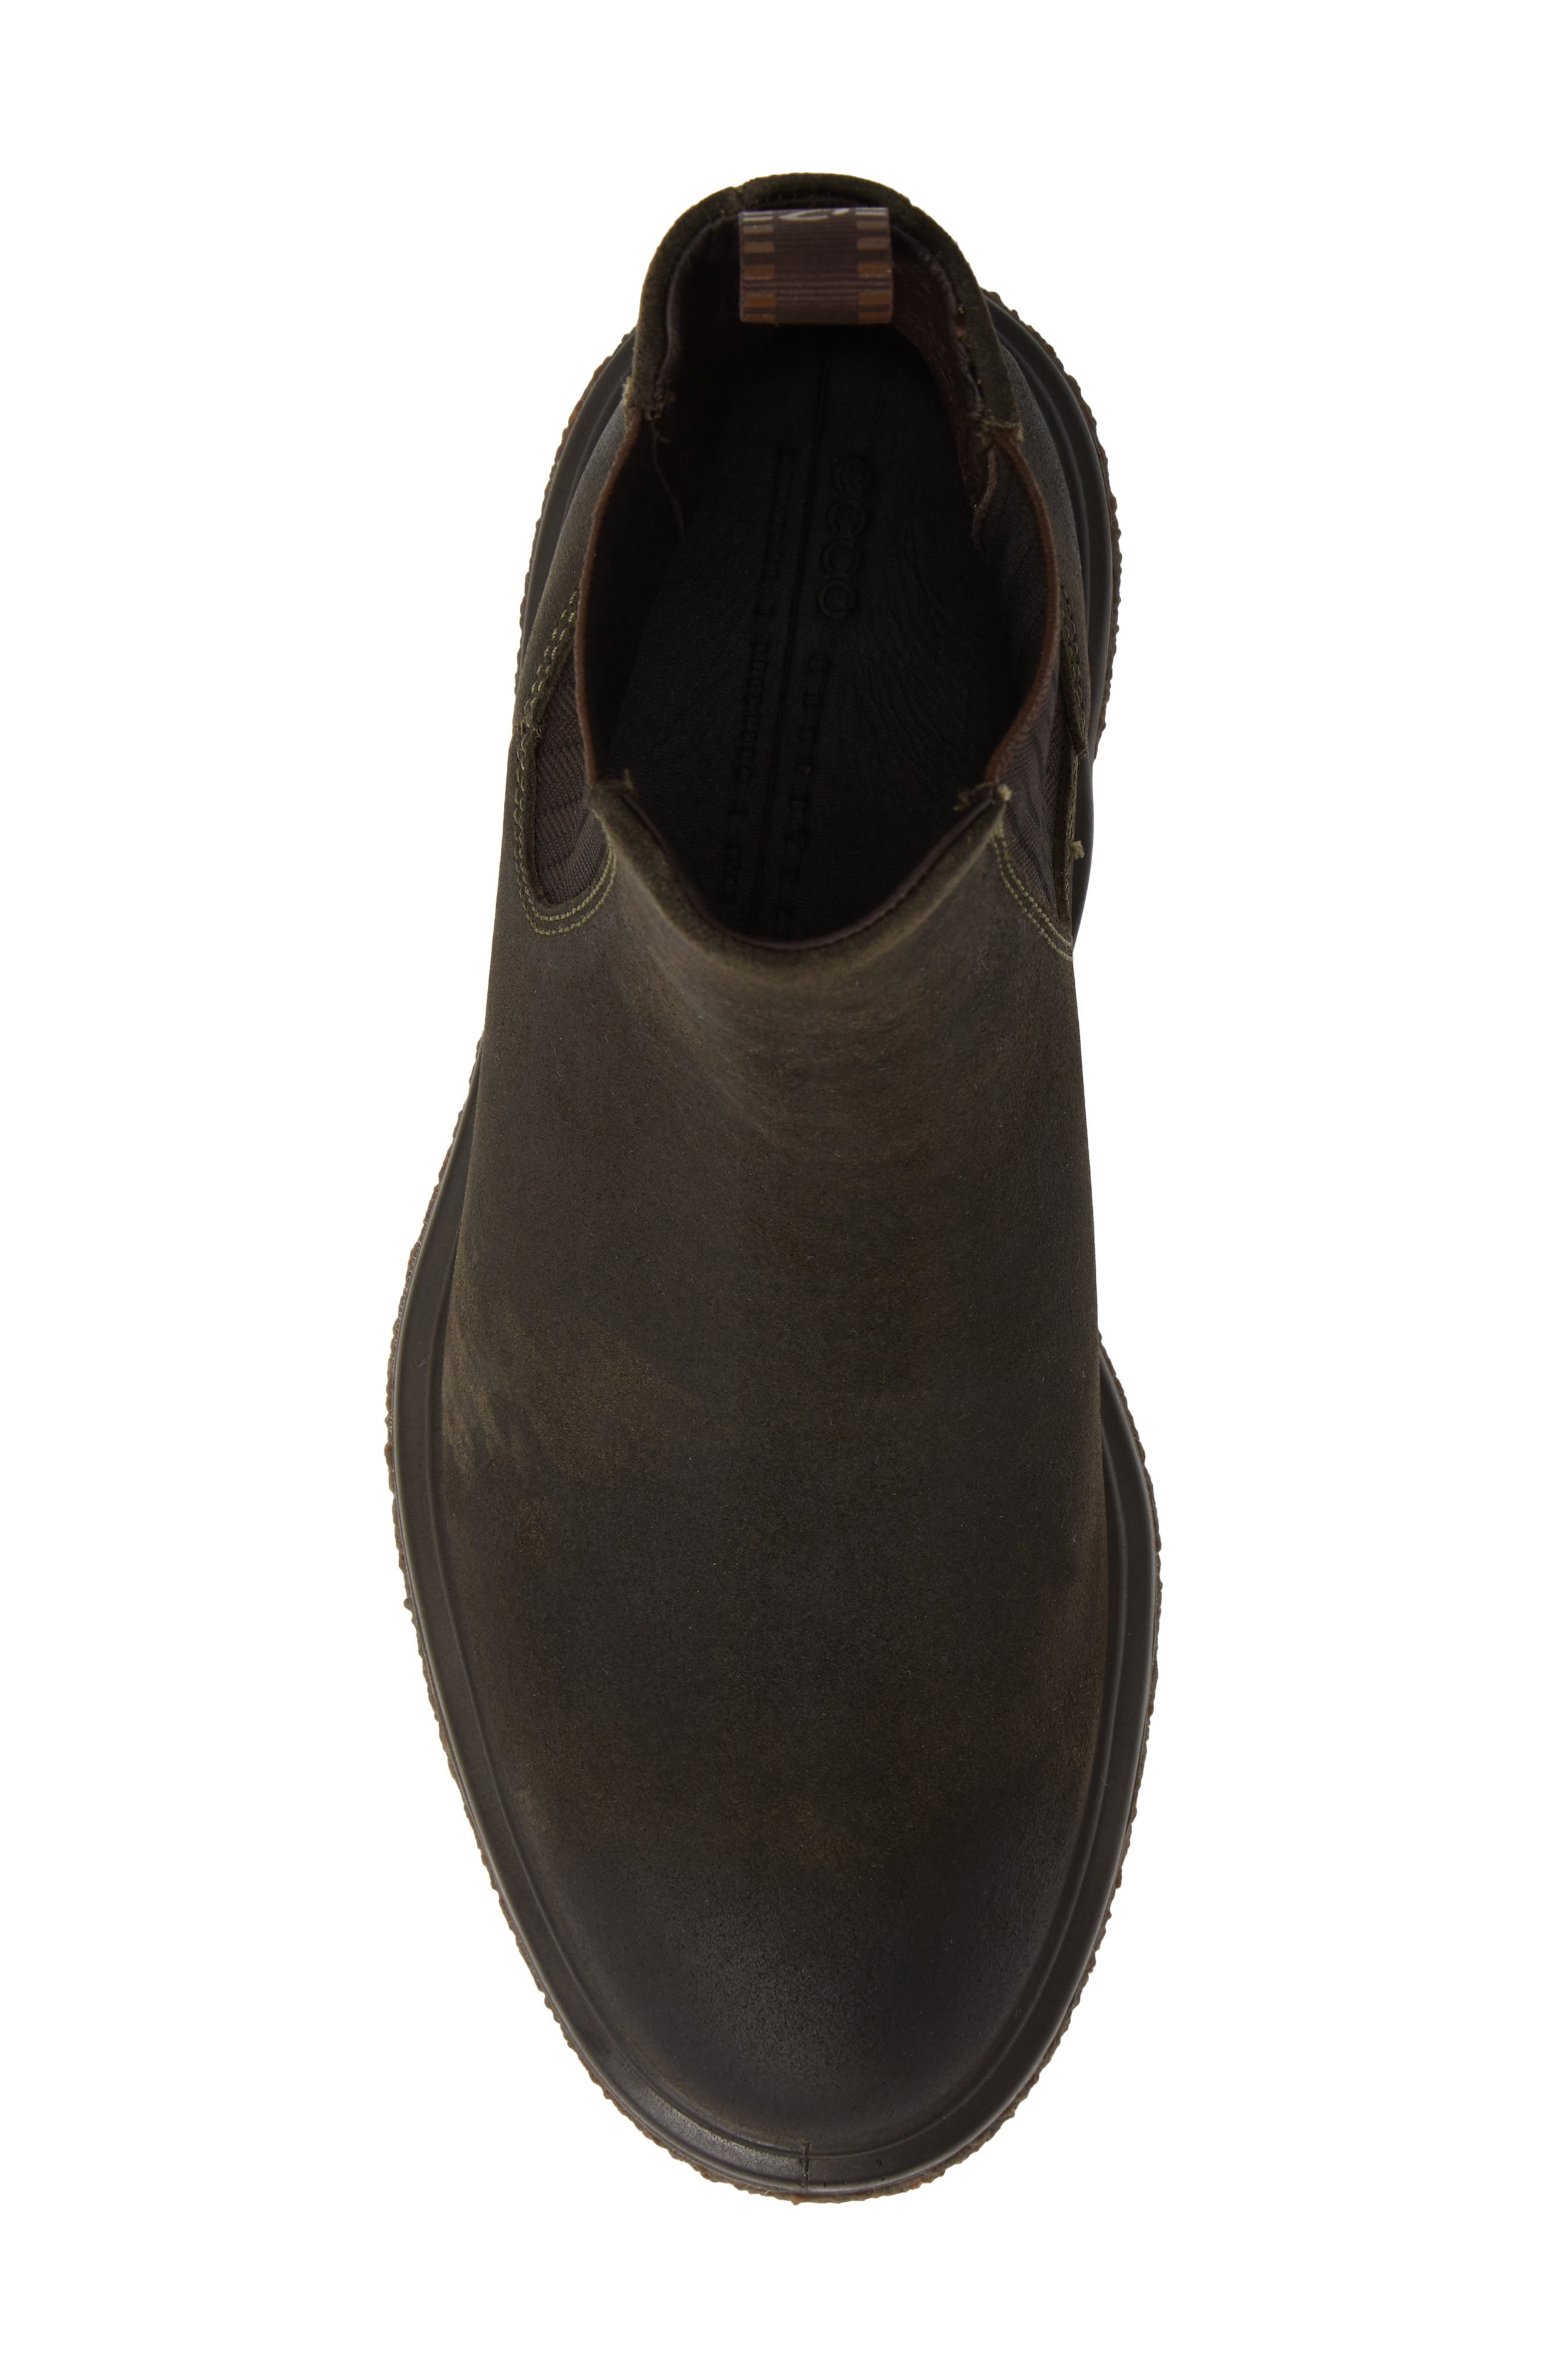 Crepetray Chelsea Boot,                             Alternate thumbnail 5, color,                             TARMAC SUEDE